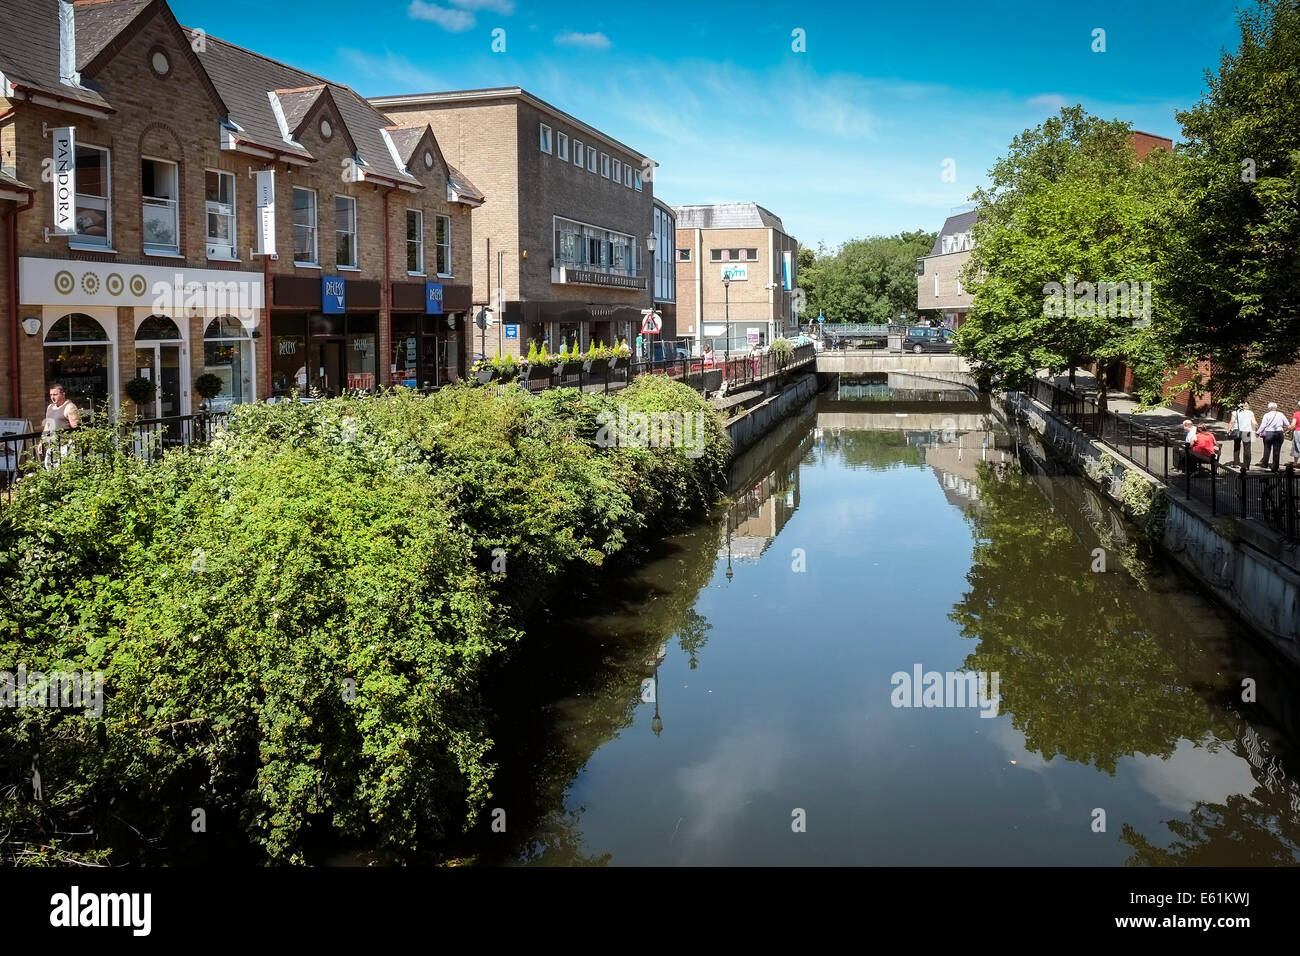 The River Can in Chelmsford City centre in Essex. - Stock Image